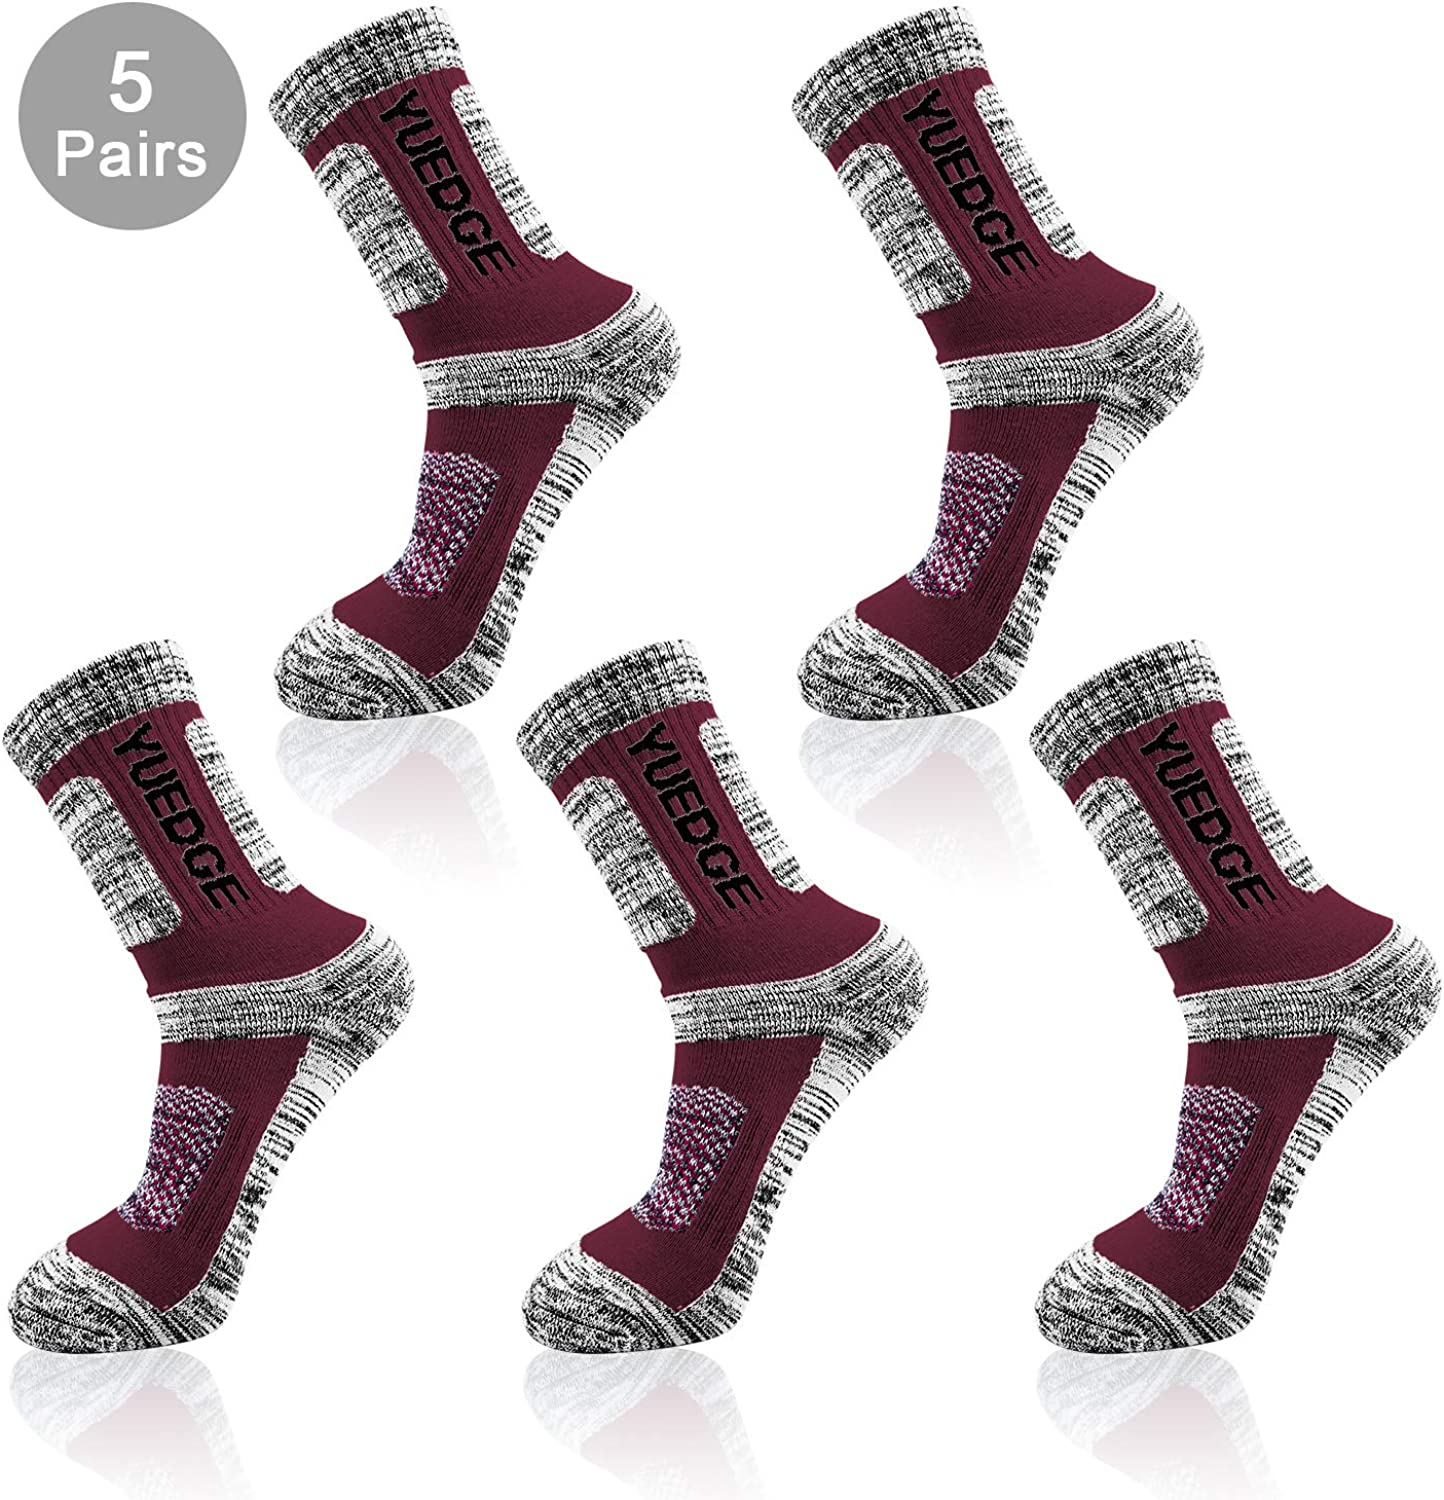 Climbing Camping YUEDGE 5 Pair Mens Athletic Performance Crew Socks Moisture Wicking Sports Socks for Outdoor Recreation Trekking